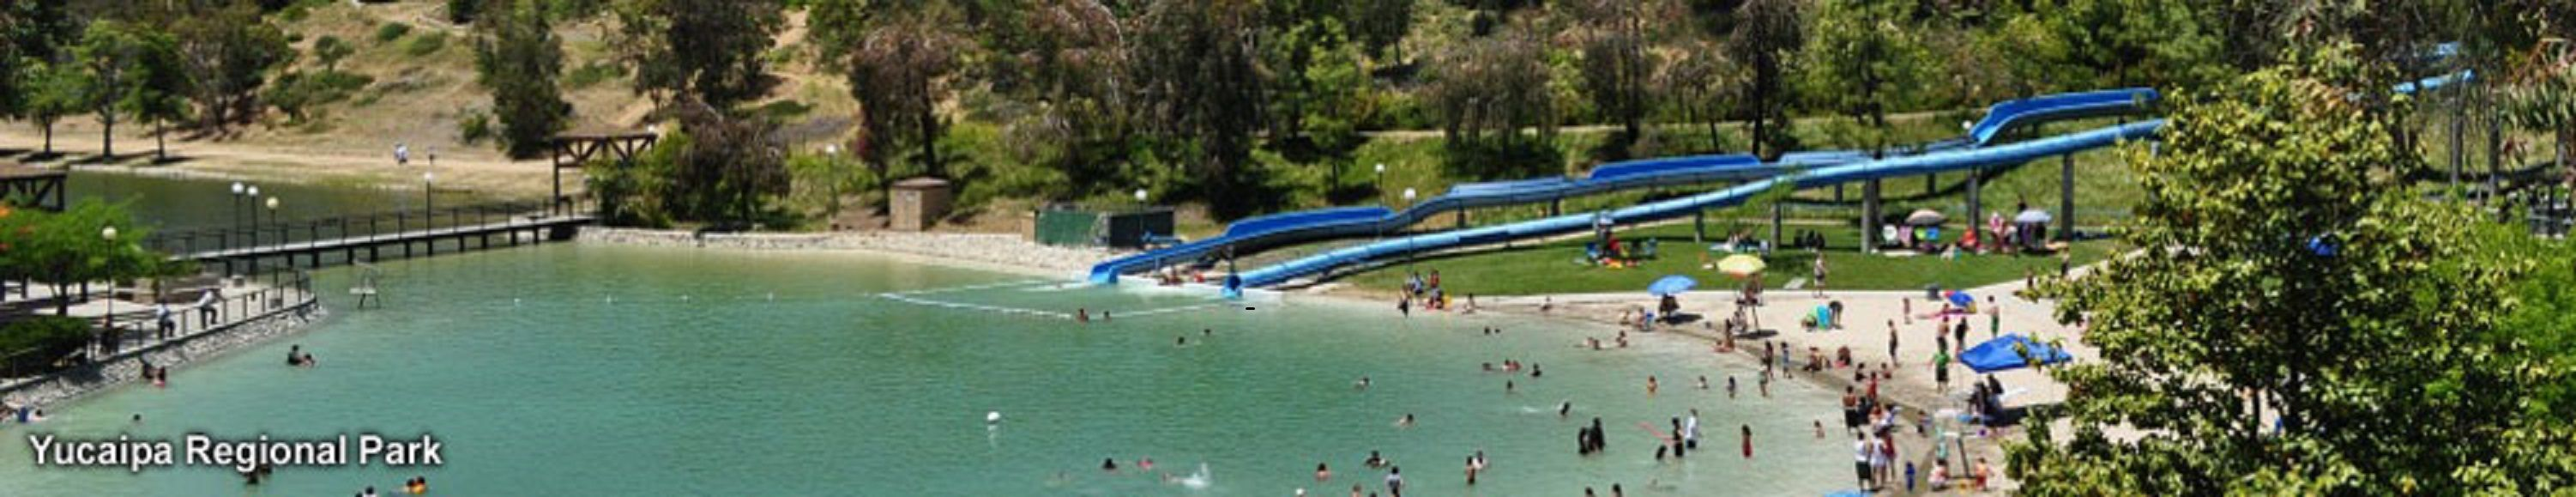 Yucaipa regional park slides socal adventure pinterest for Yucaipa regional park fishing